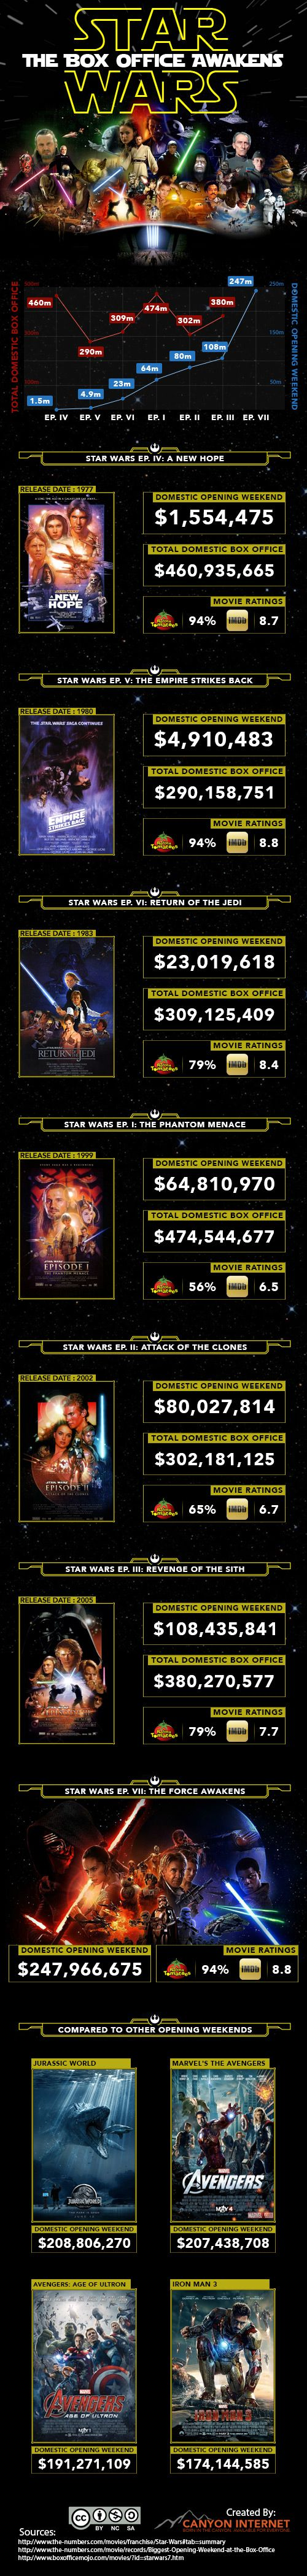 Star Wars Opening Weekend #infographic